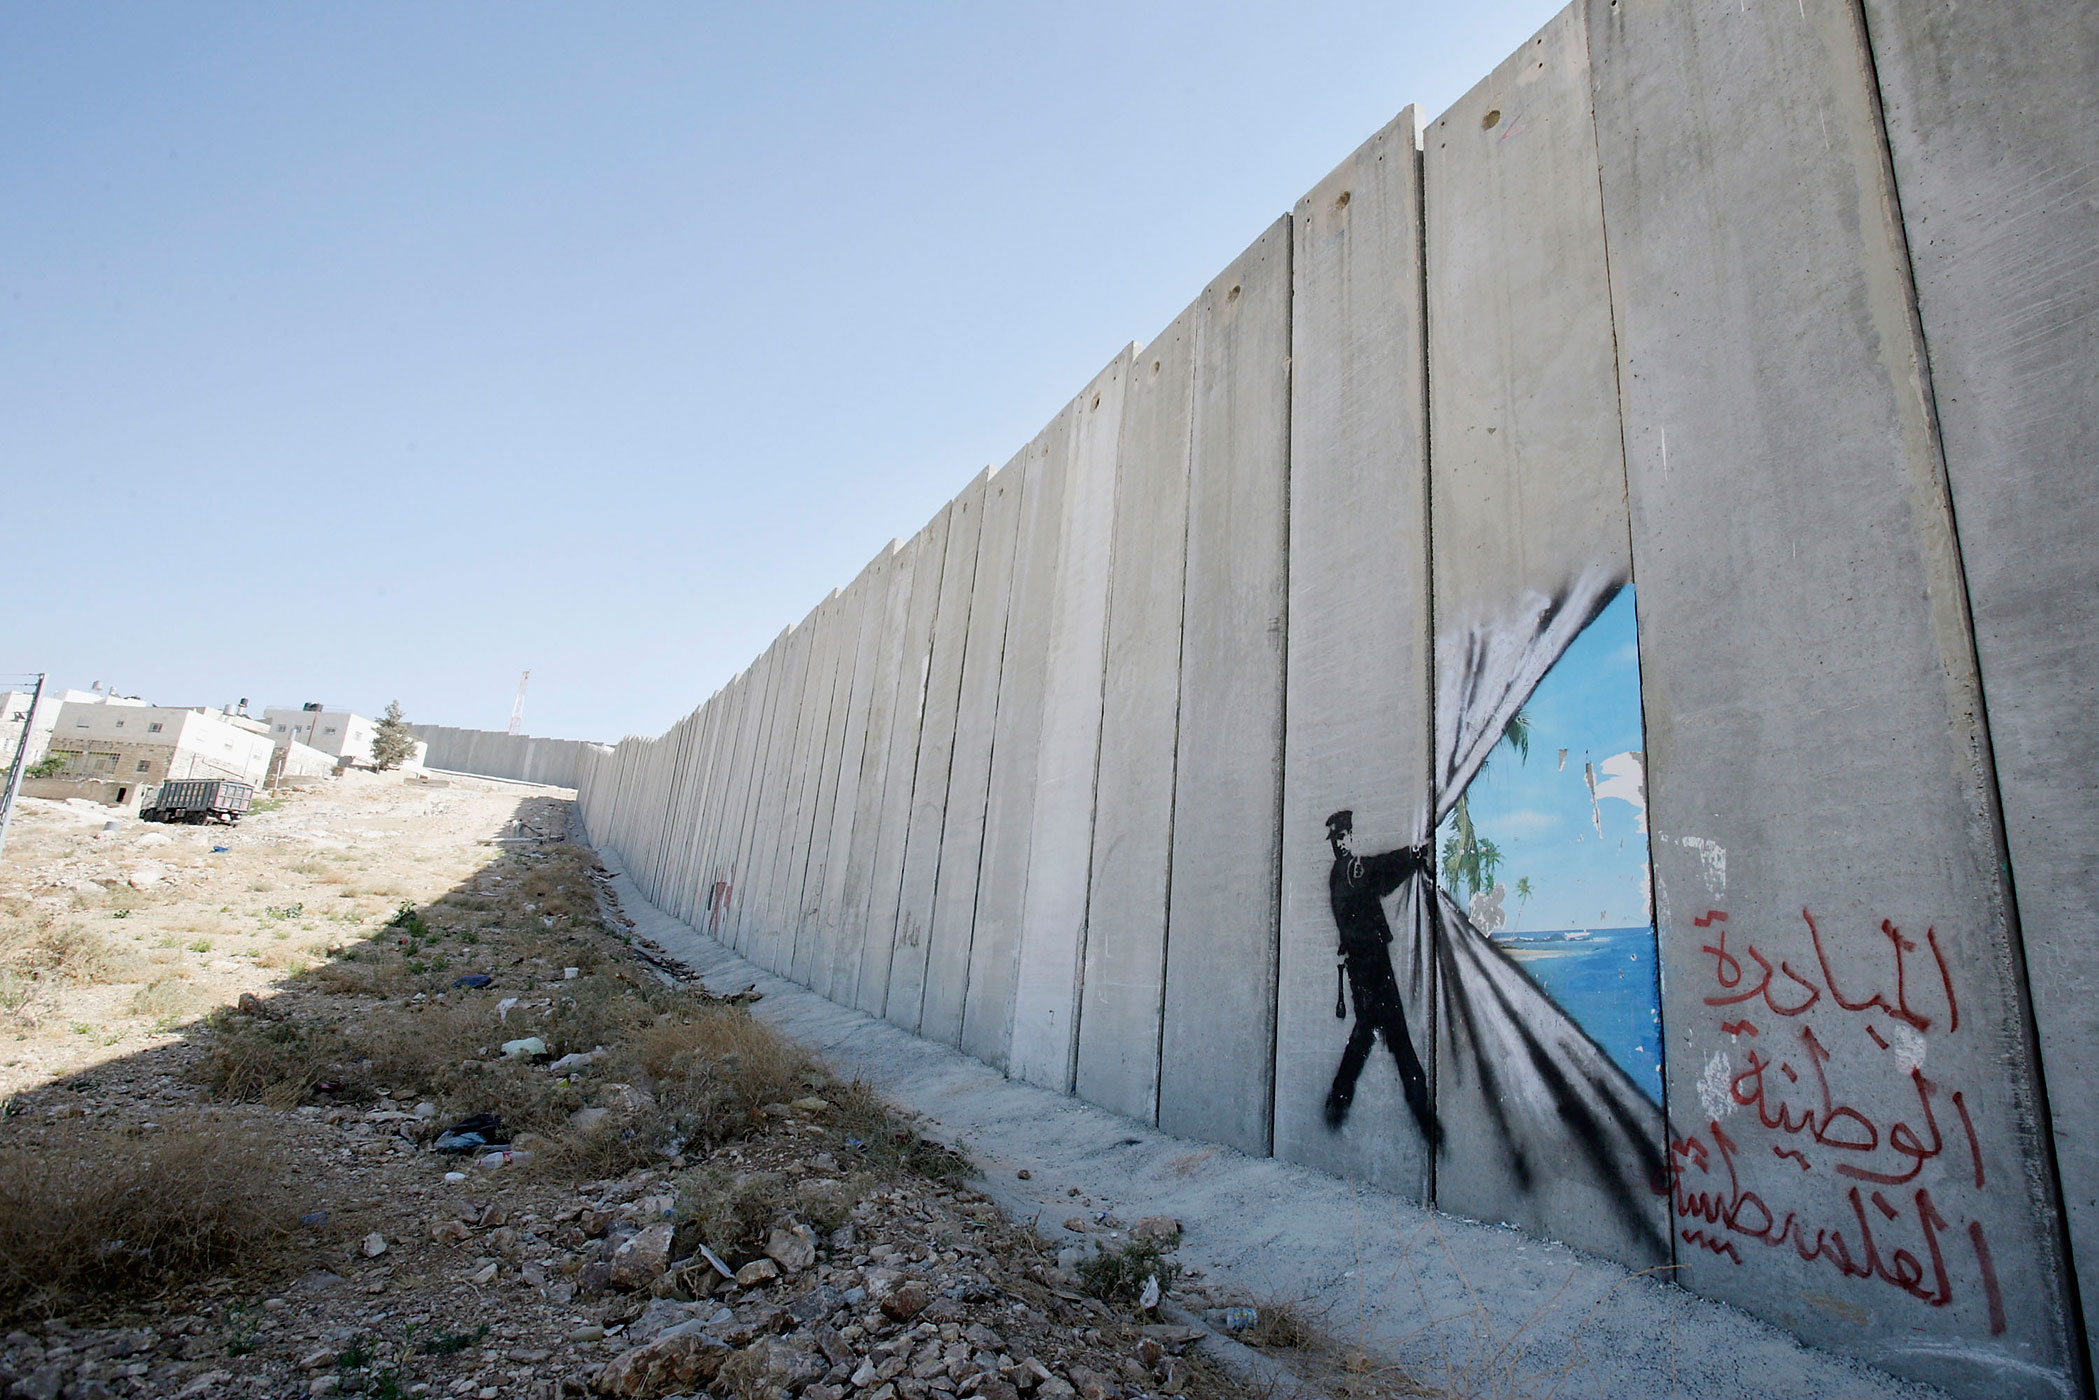 A Banksy is seen on Israel's highly controversial West Bank barrier in Abu Dis on August 6, 2005.